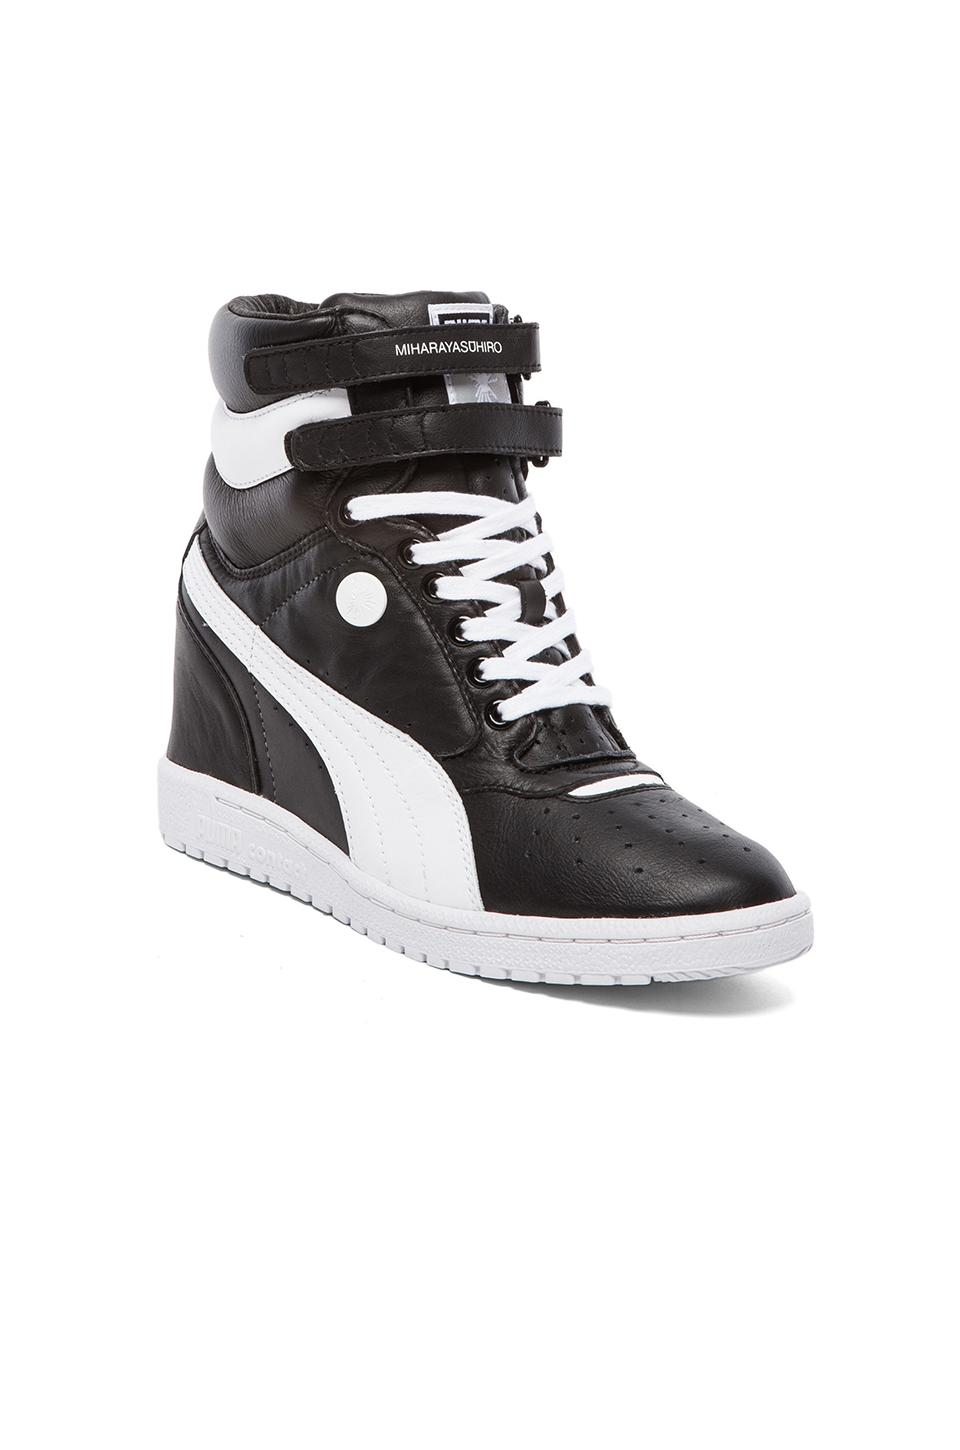 Puma by Mihara MY-66 Sneaker in Black/White